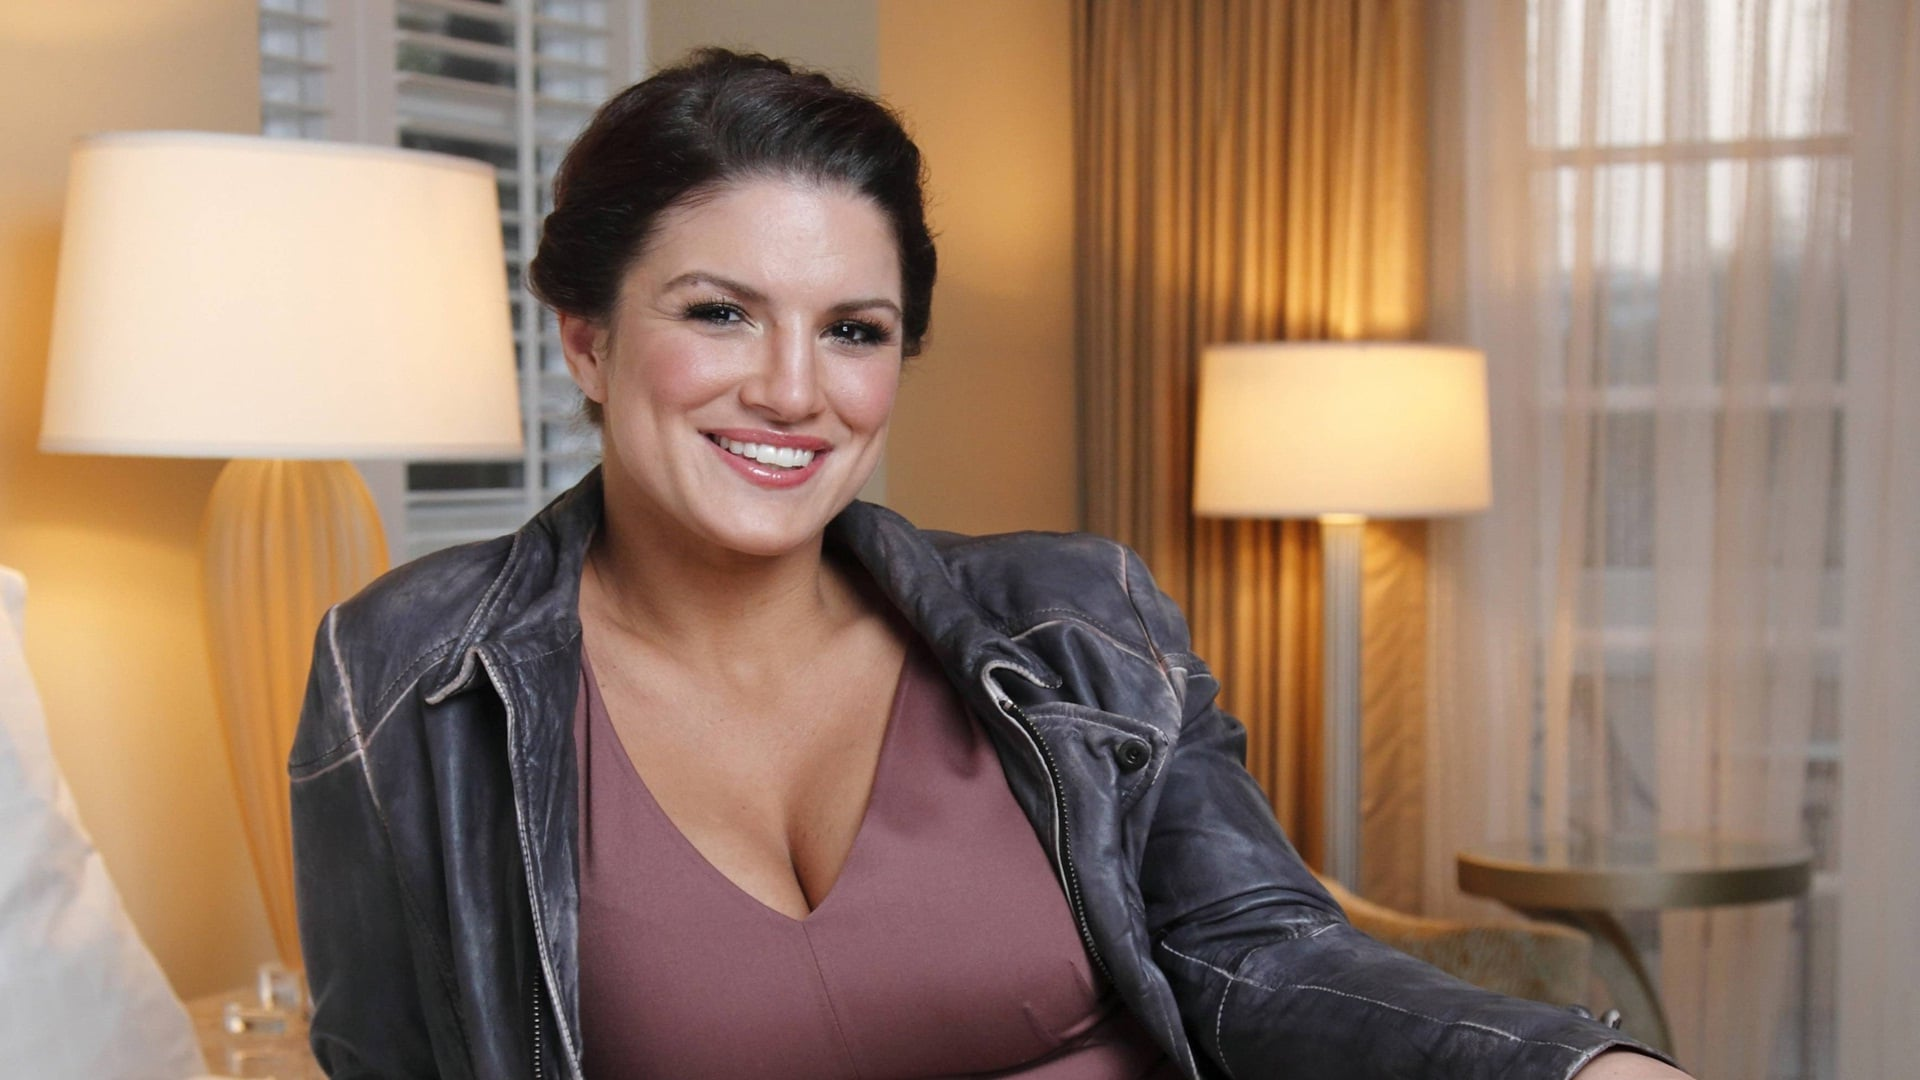 gina carano wallpapers high resolution download